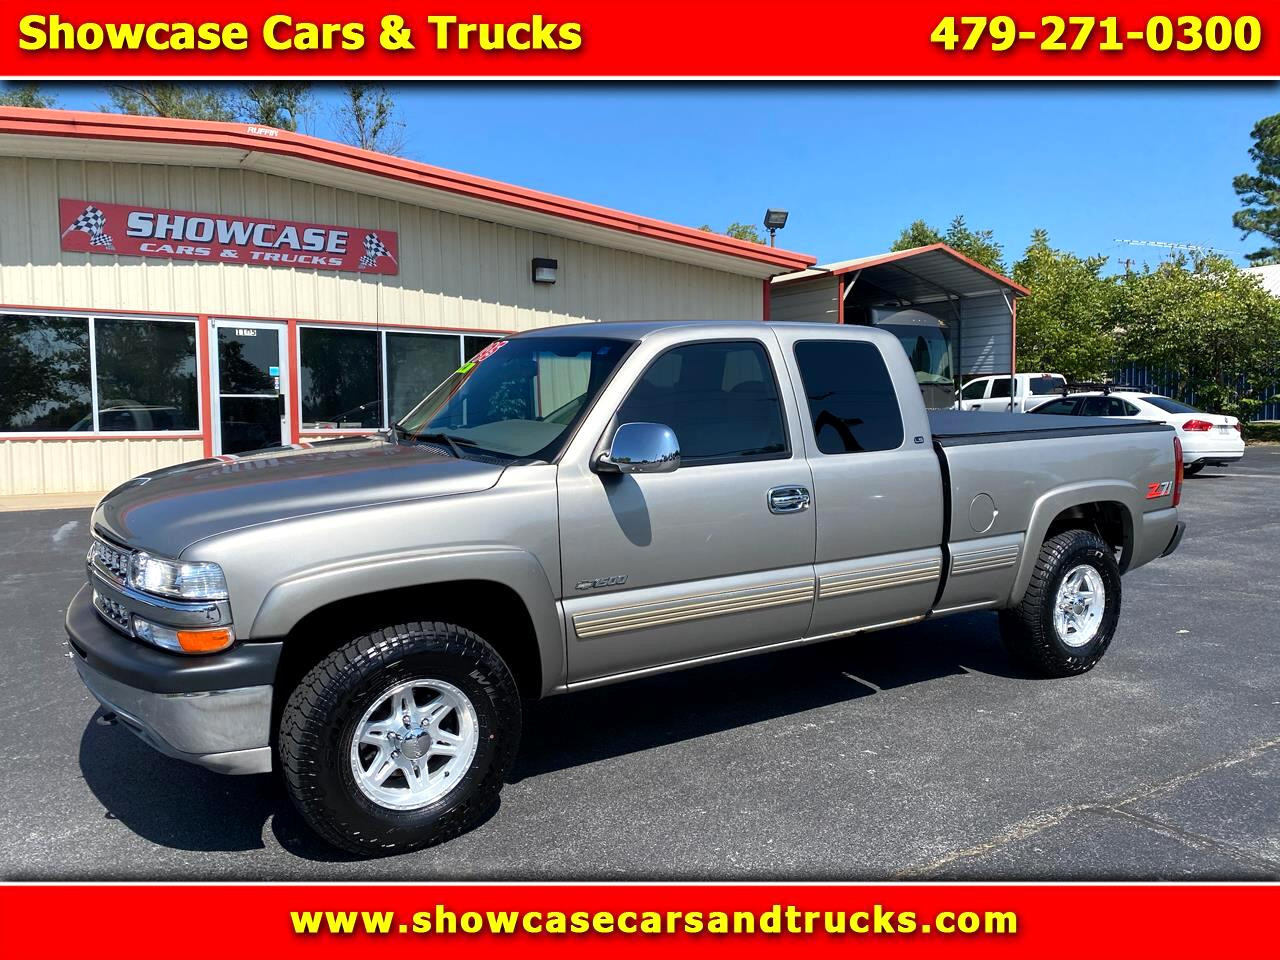 Chevrolet Silverado 1500 LT Ext. Cab 3-Door Short Bed 4WD 2000